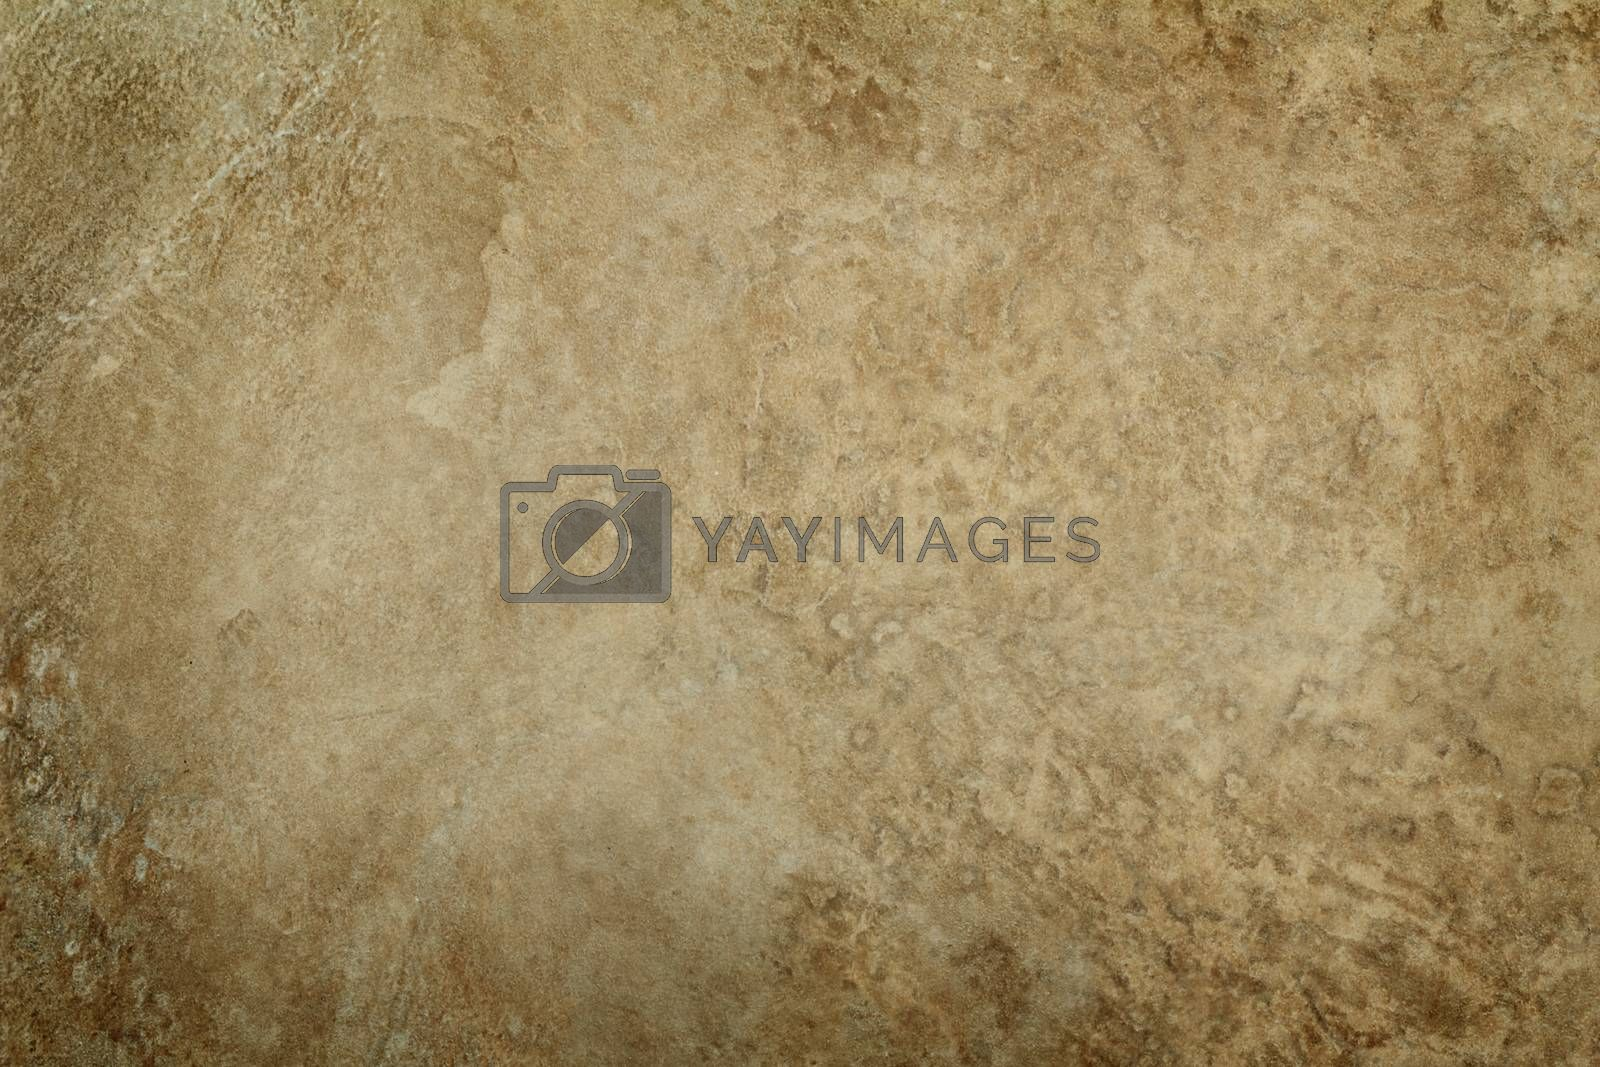 Fragment of ceramic tile with a picture, imitating natural stone.